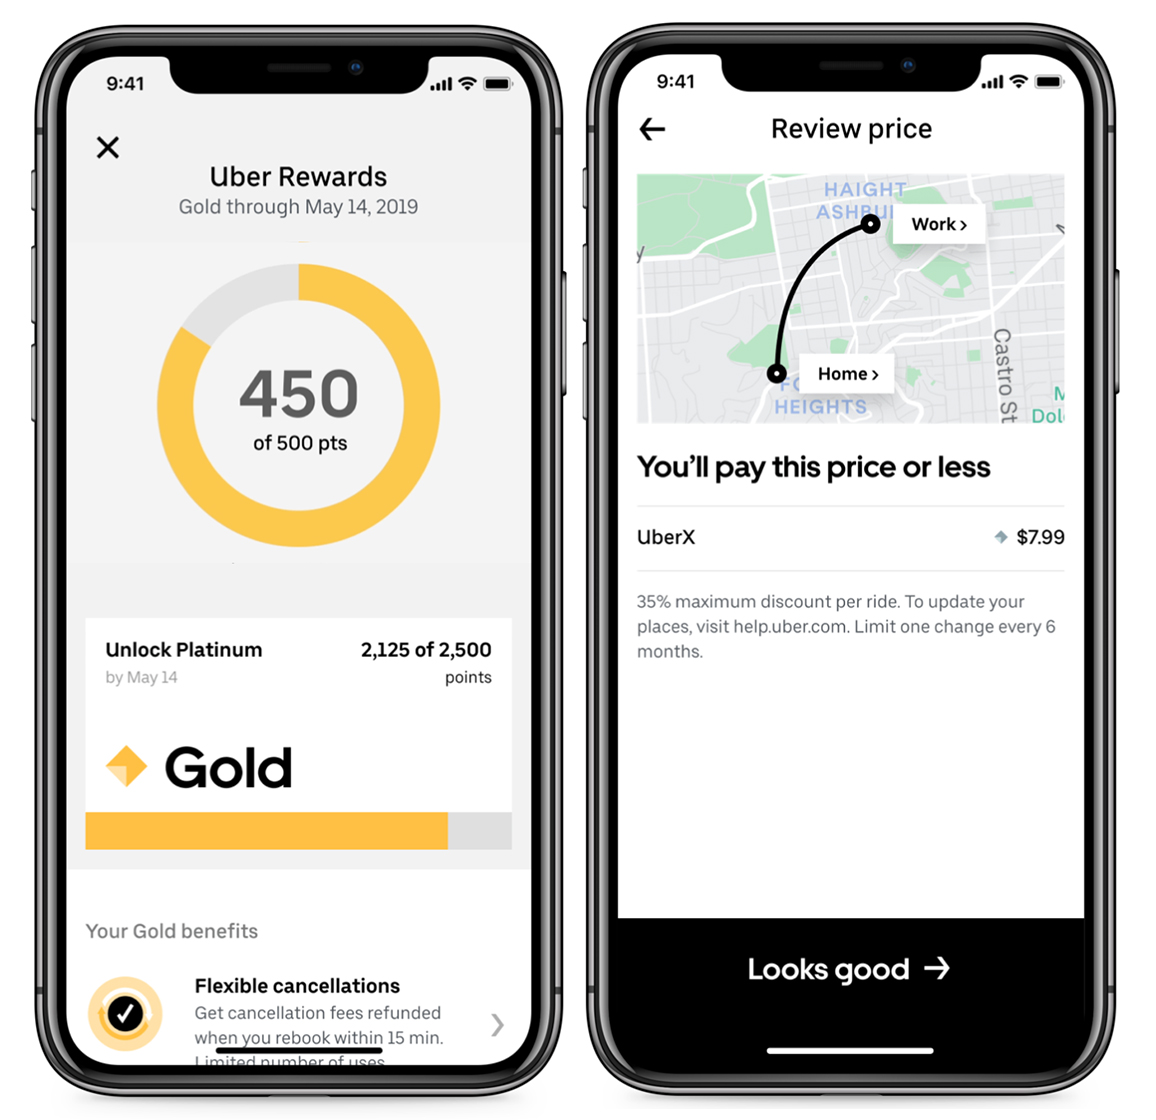 Uber, Lyft rolling out rewards programs - like airlines' frequent flyer miles